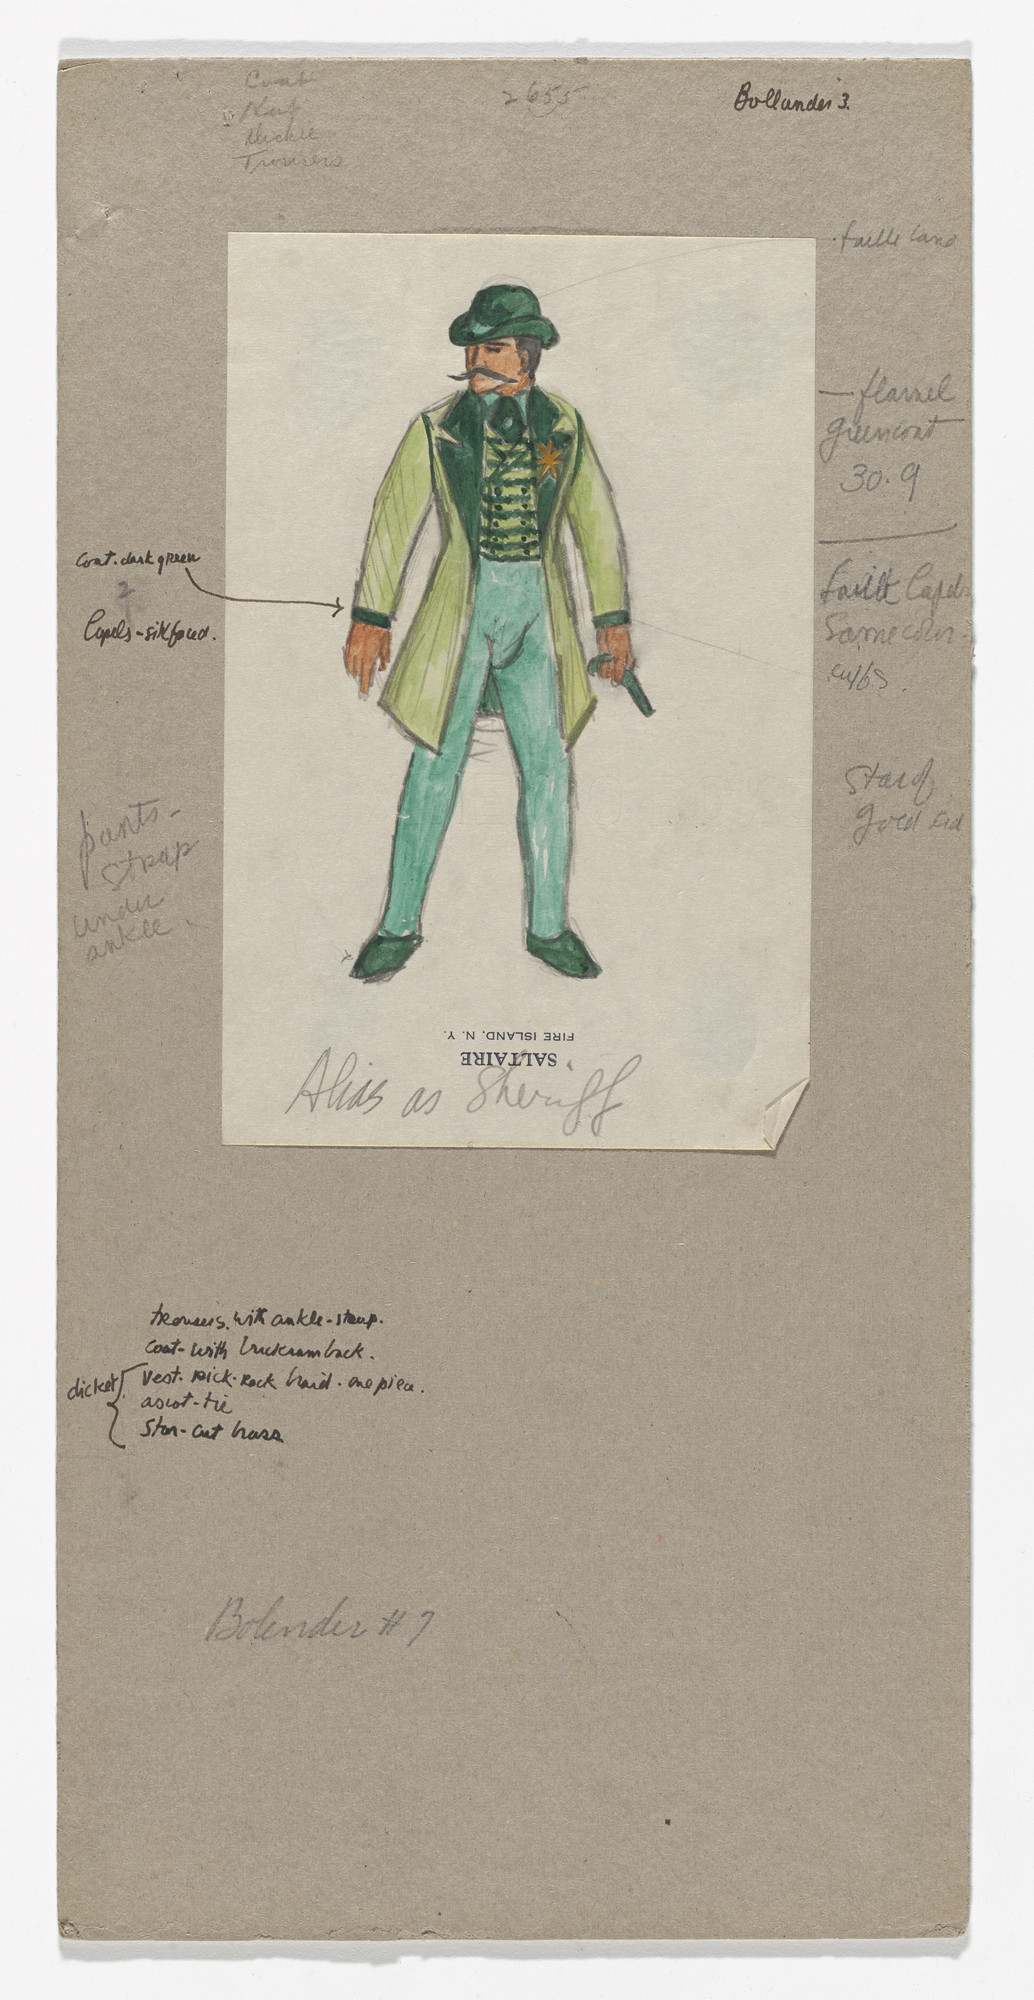 Jared French. Alias as Sheriff. Costume design for the ballet Billy the Kid. 1938